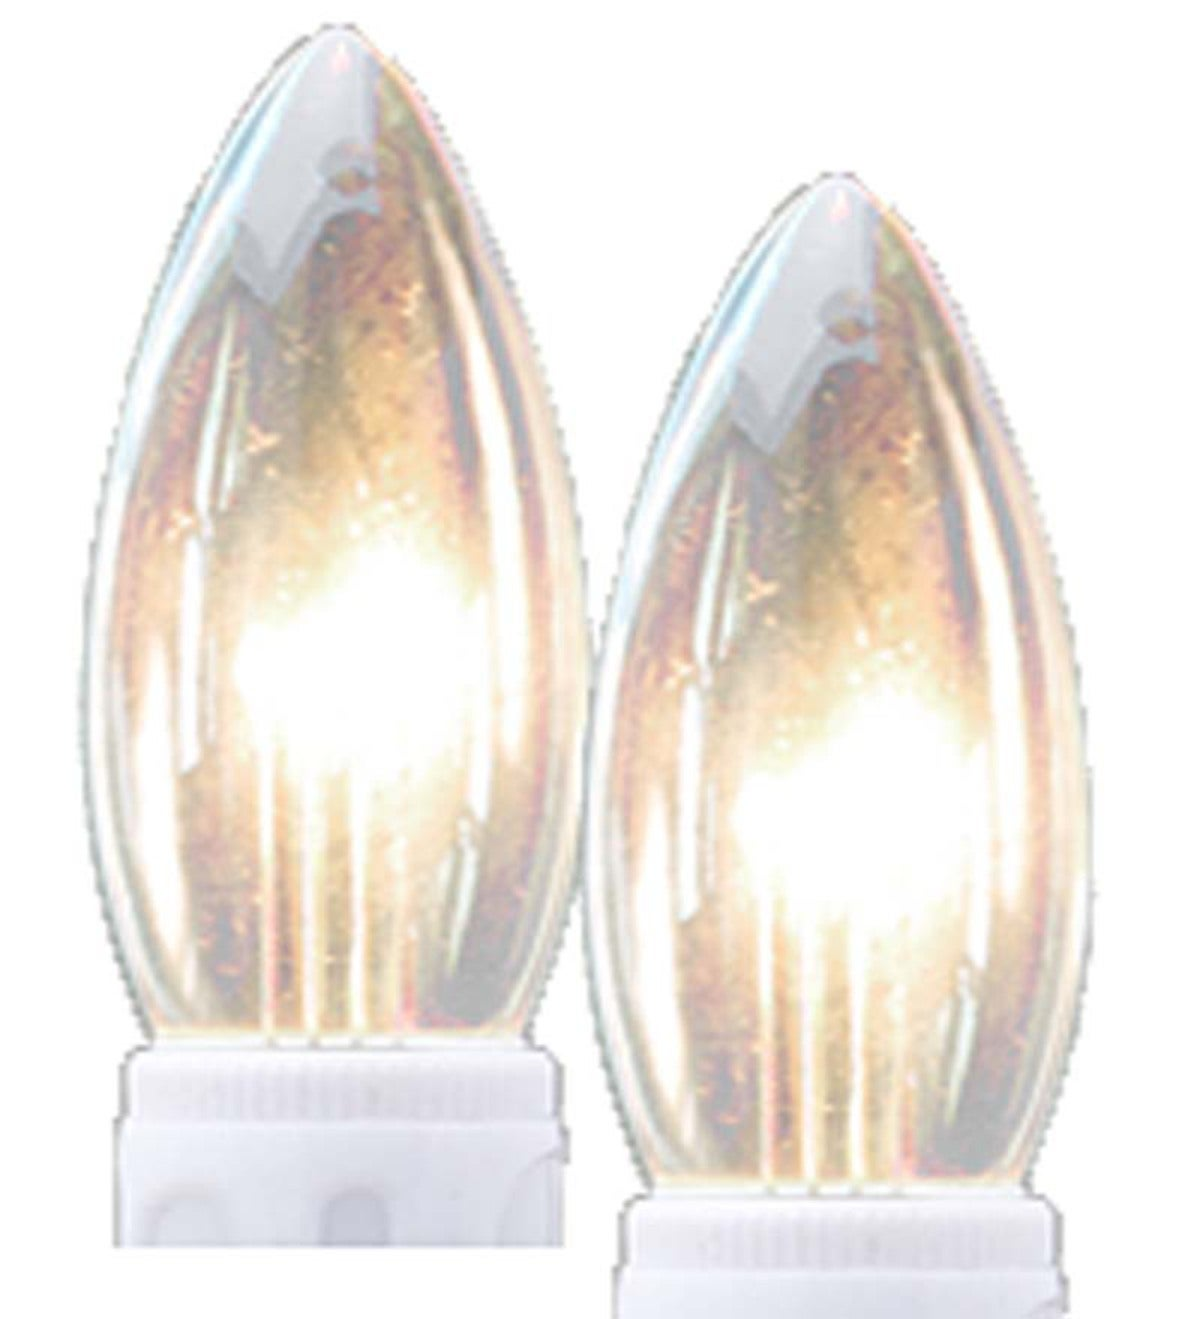 Outward-Facing LED Replacement Bulbs, Set of 2 - Ivory Base